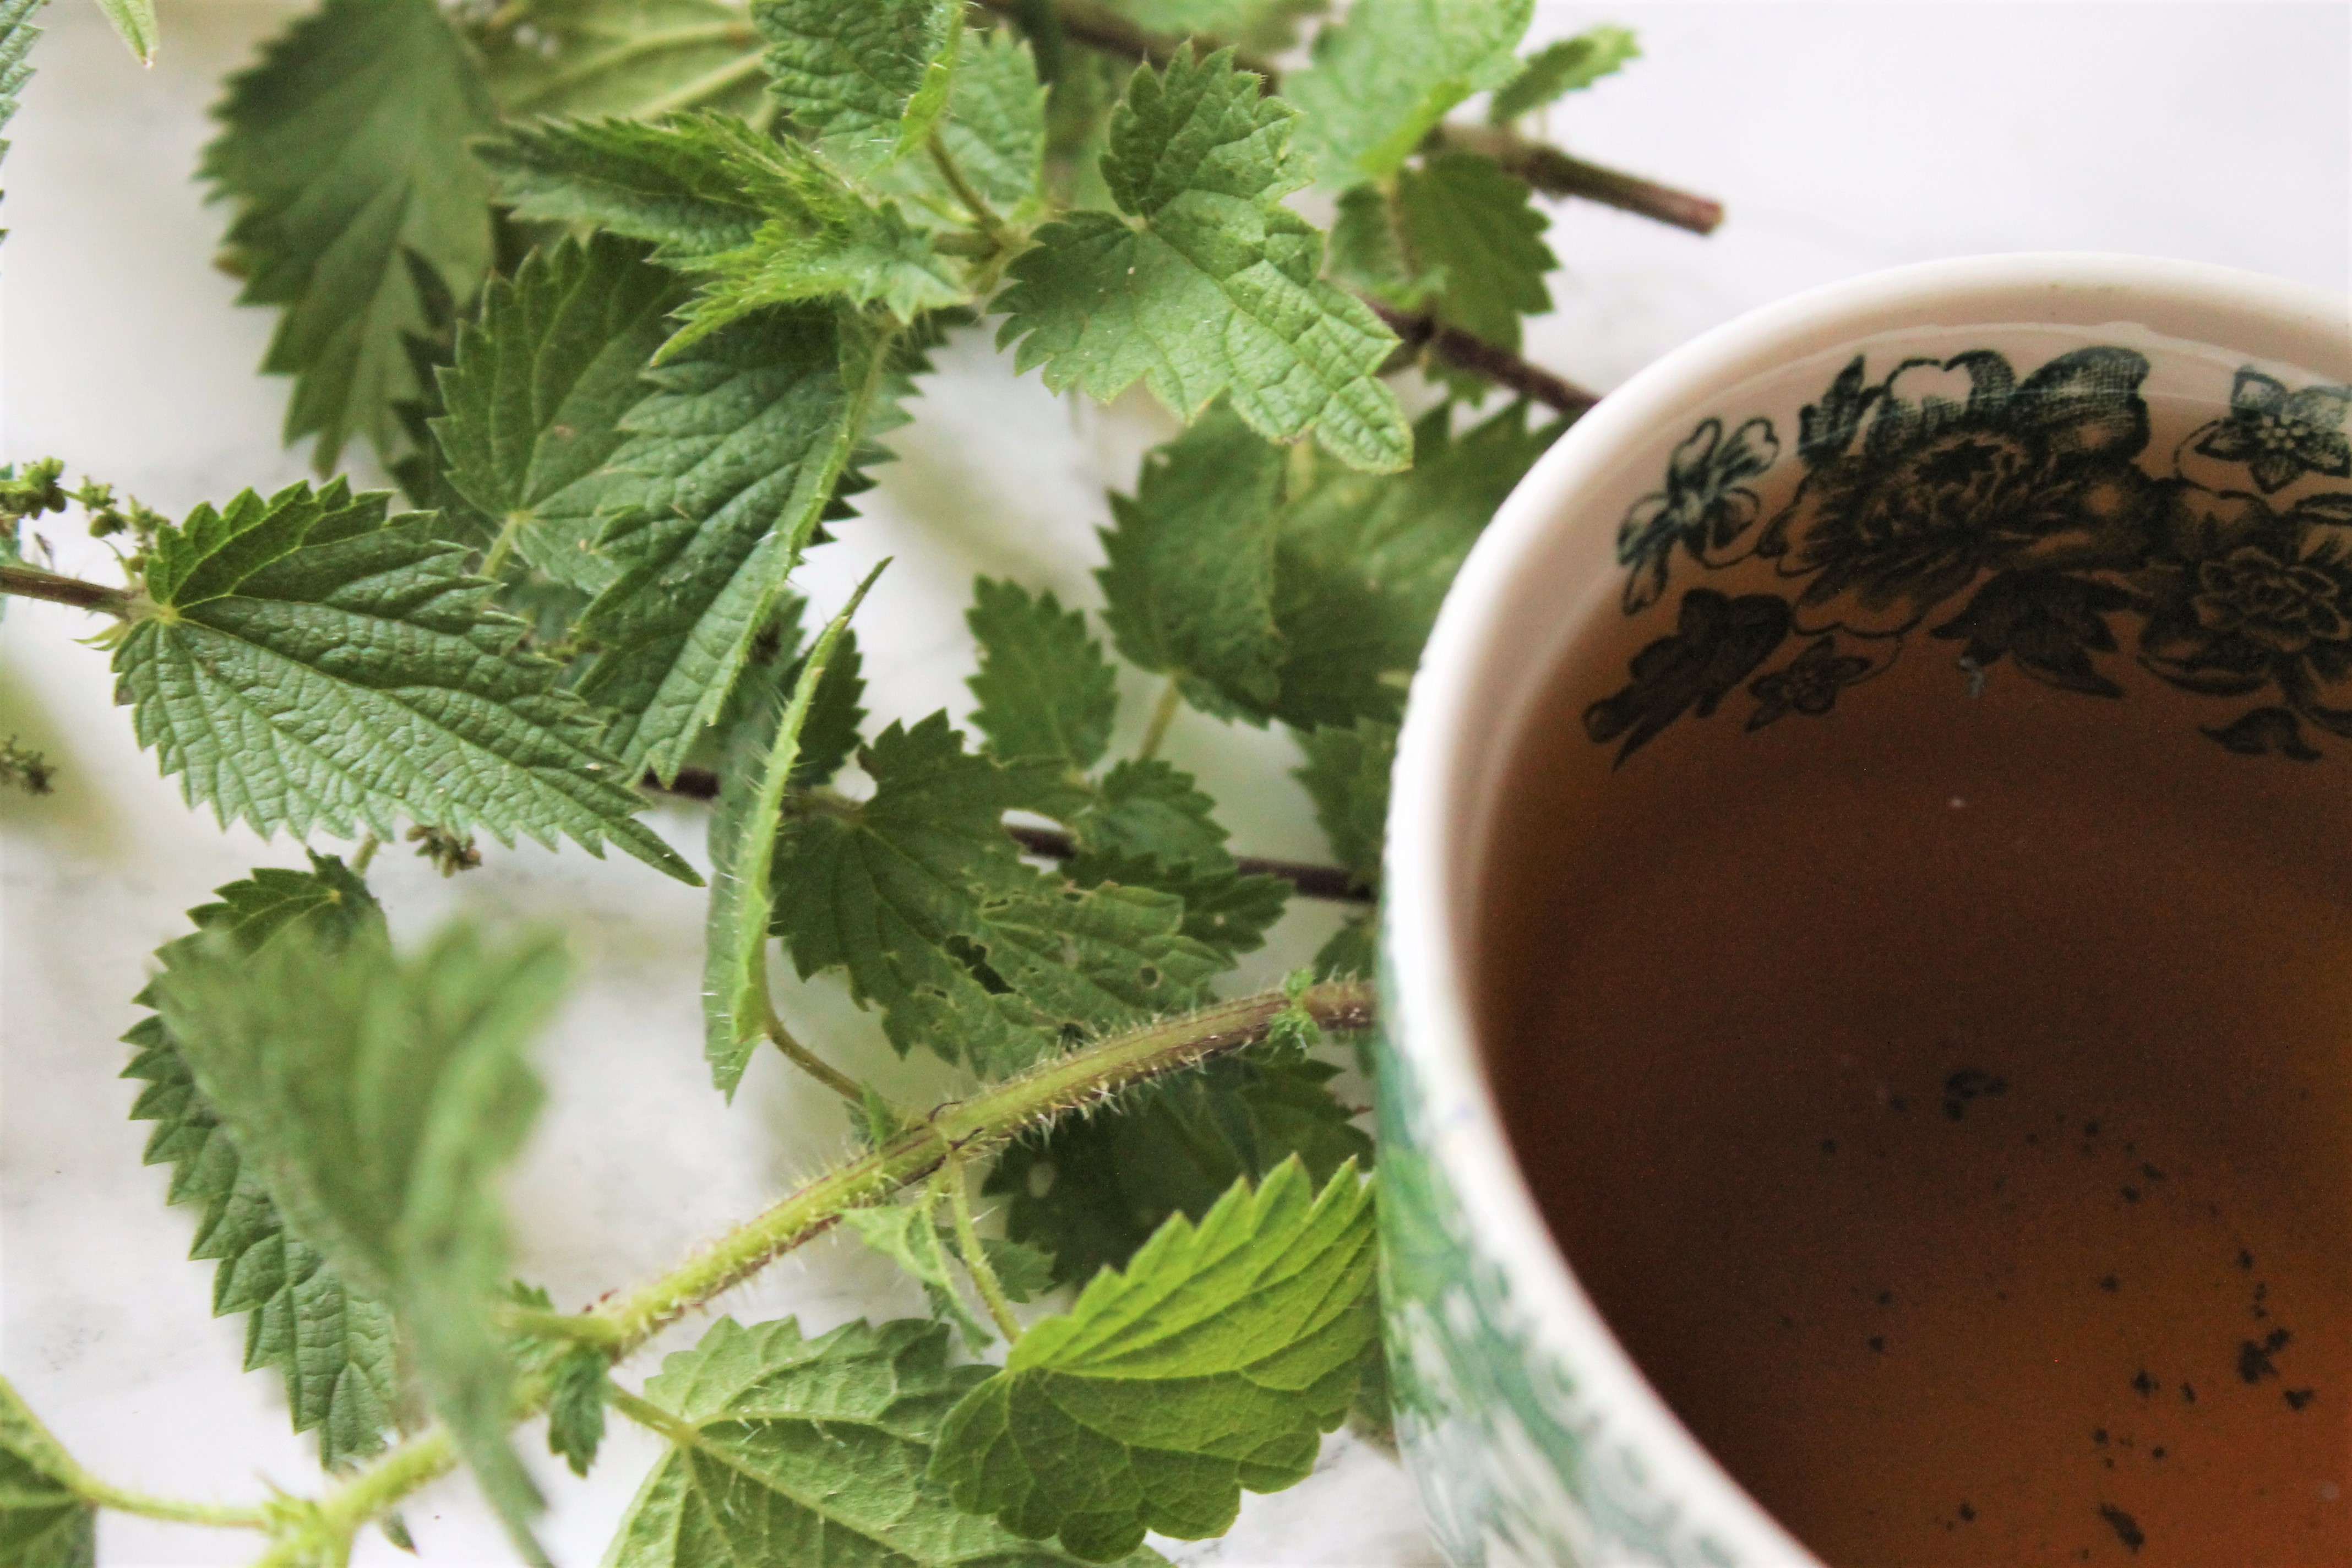 nettle sting leaves and tea